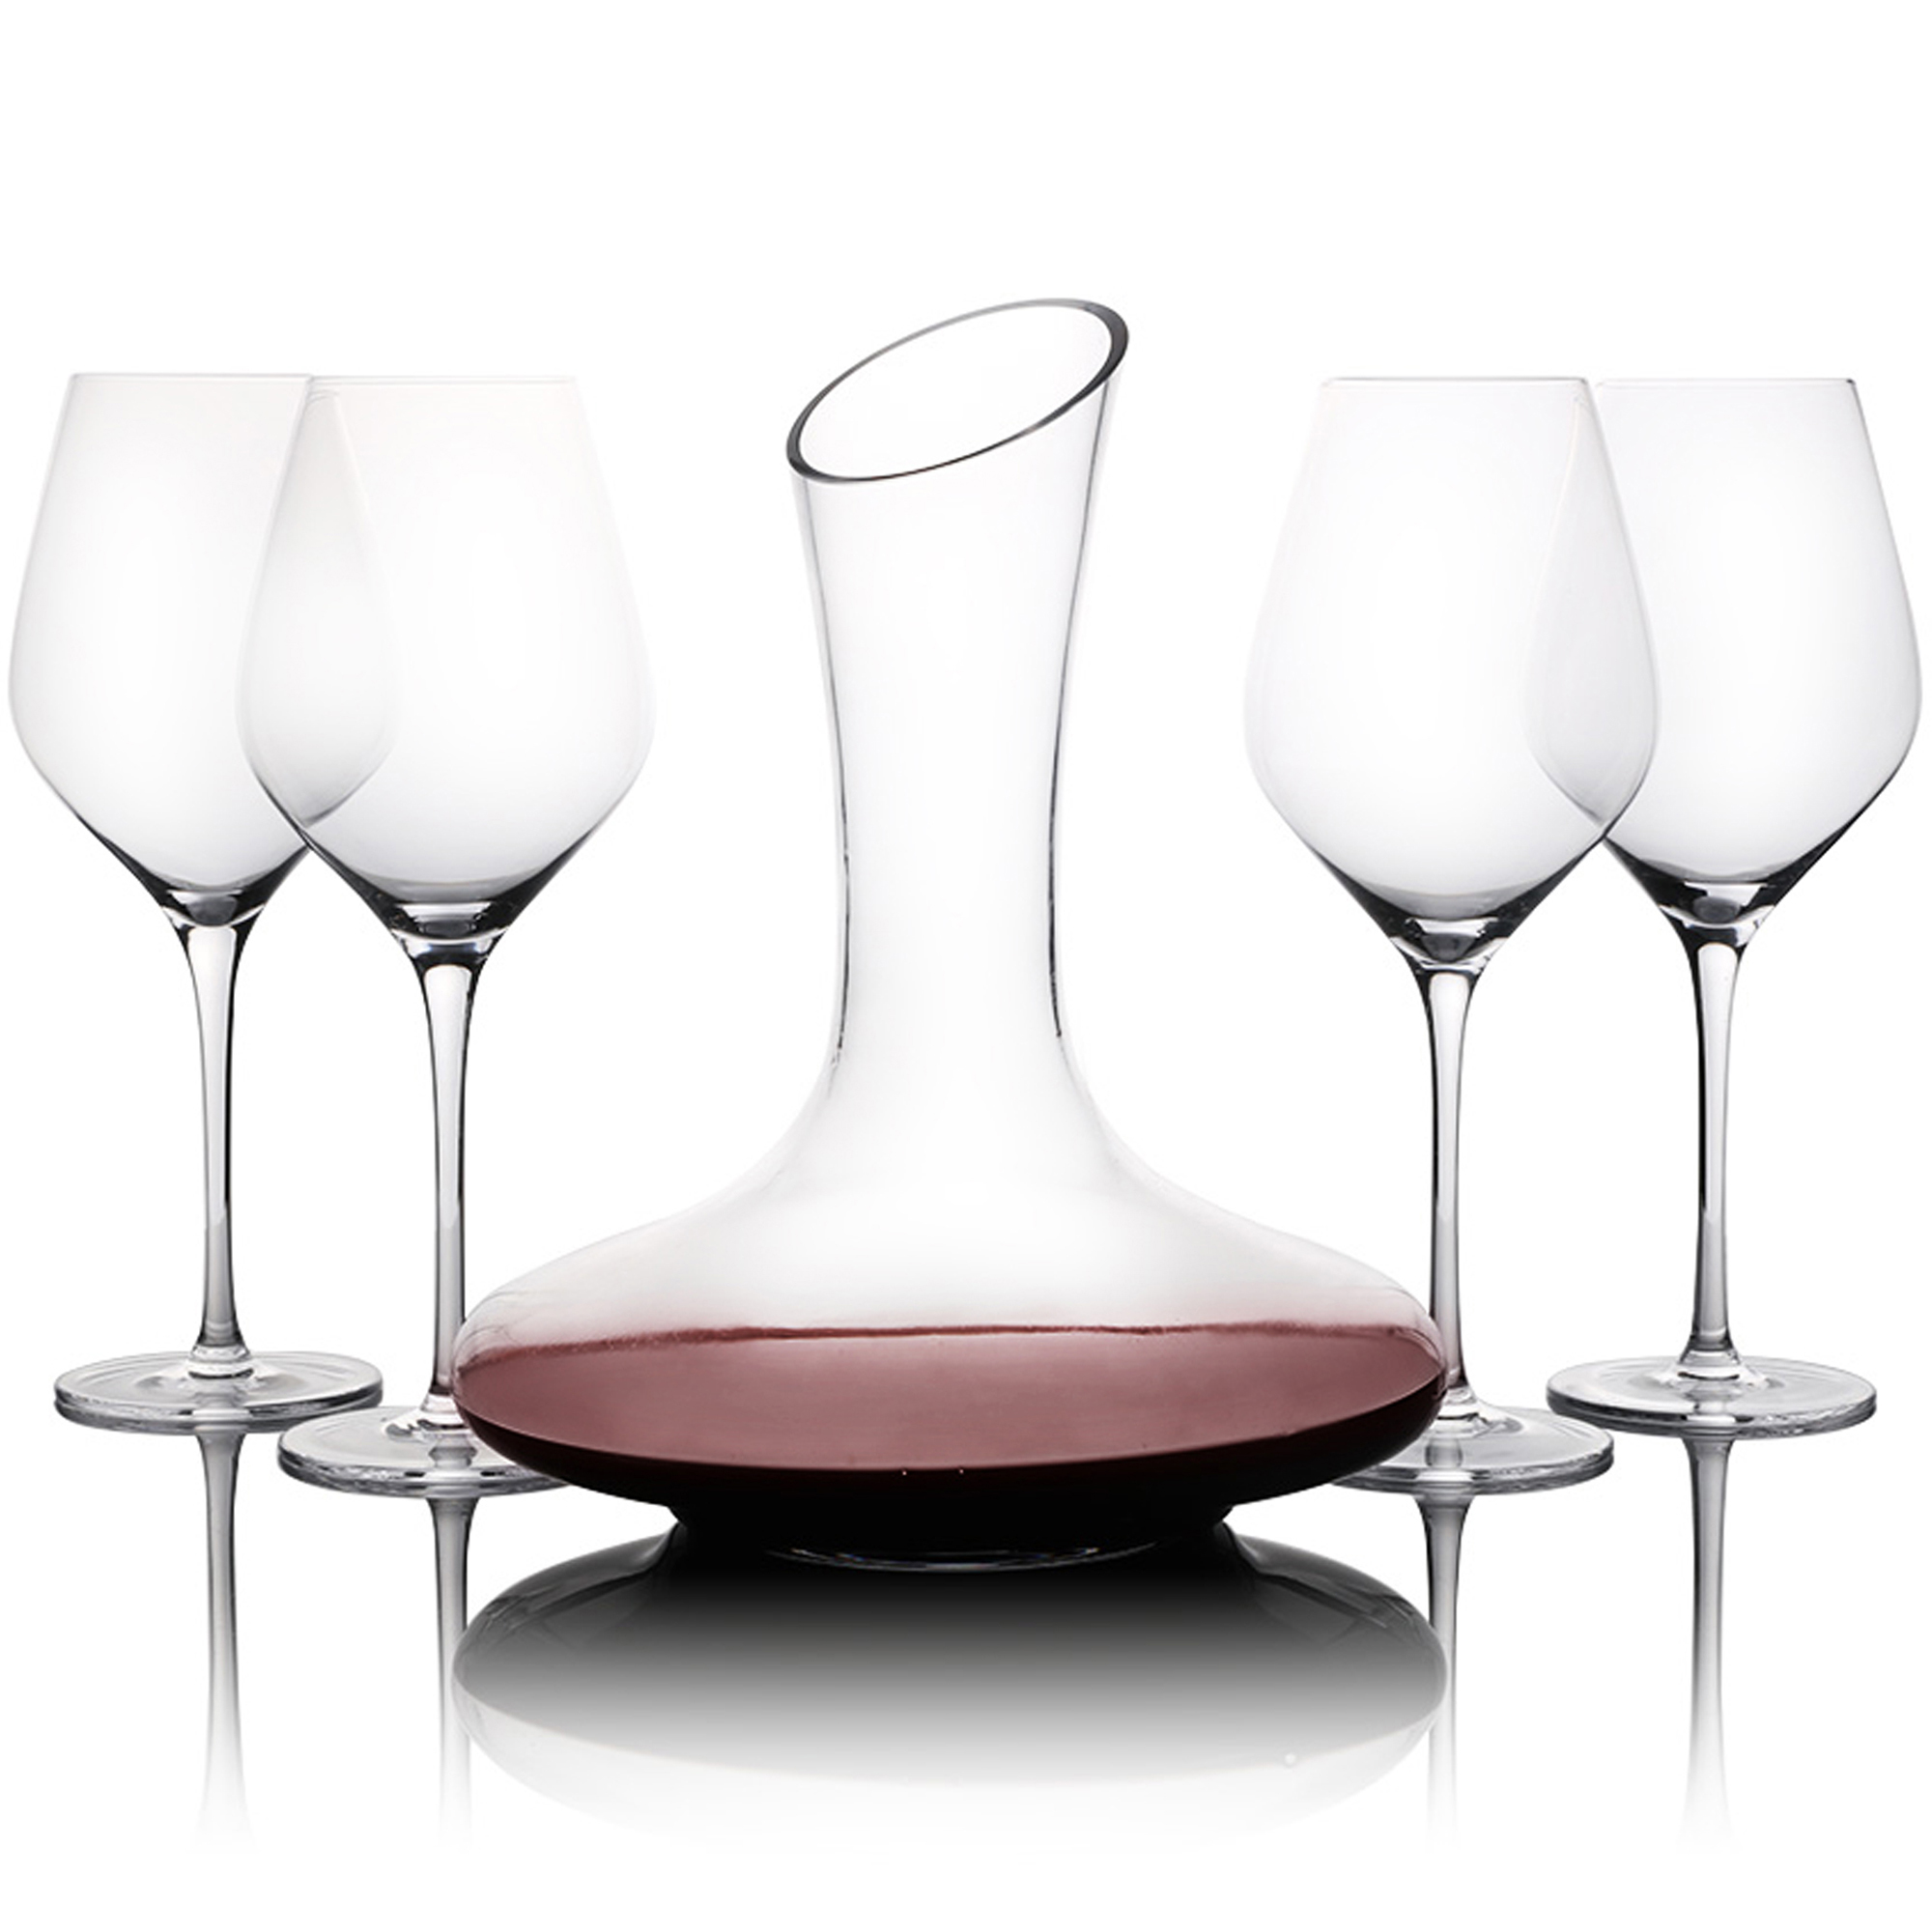 Decanter Wine Glas 5 Piece Wine Glass Decanter Set